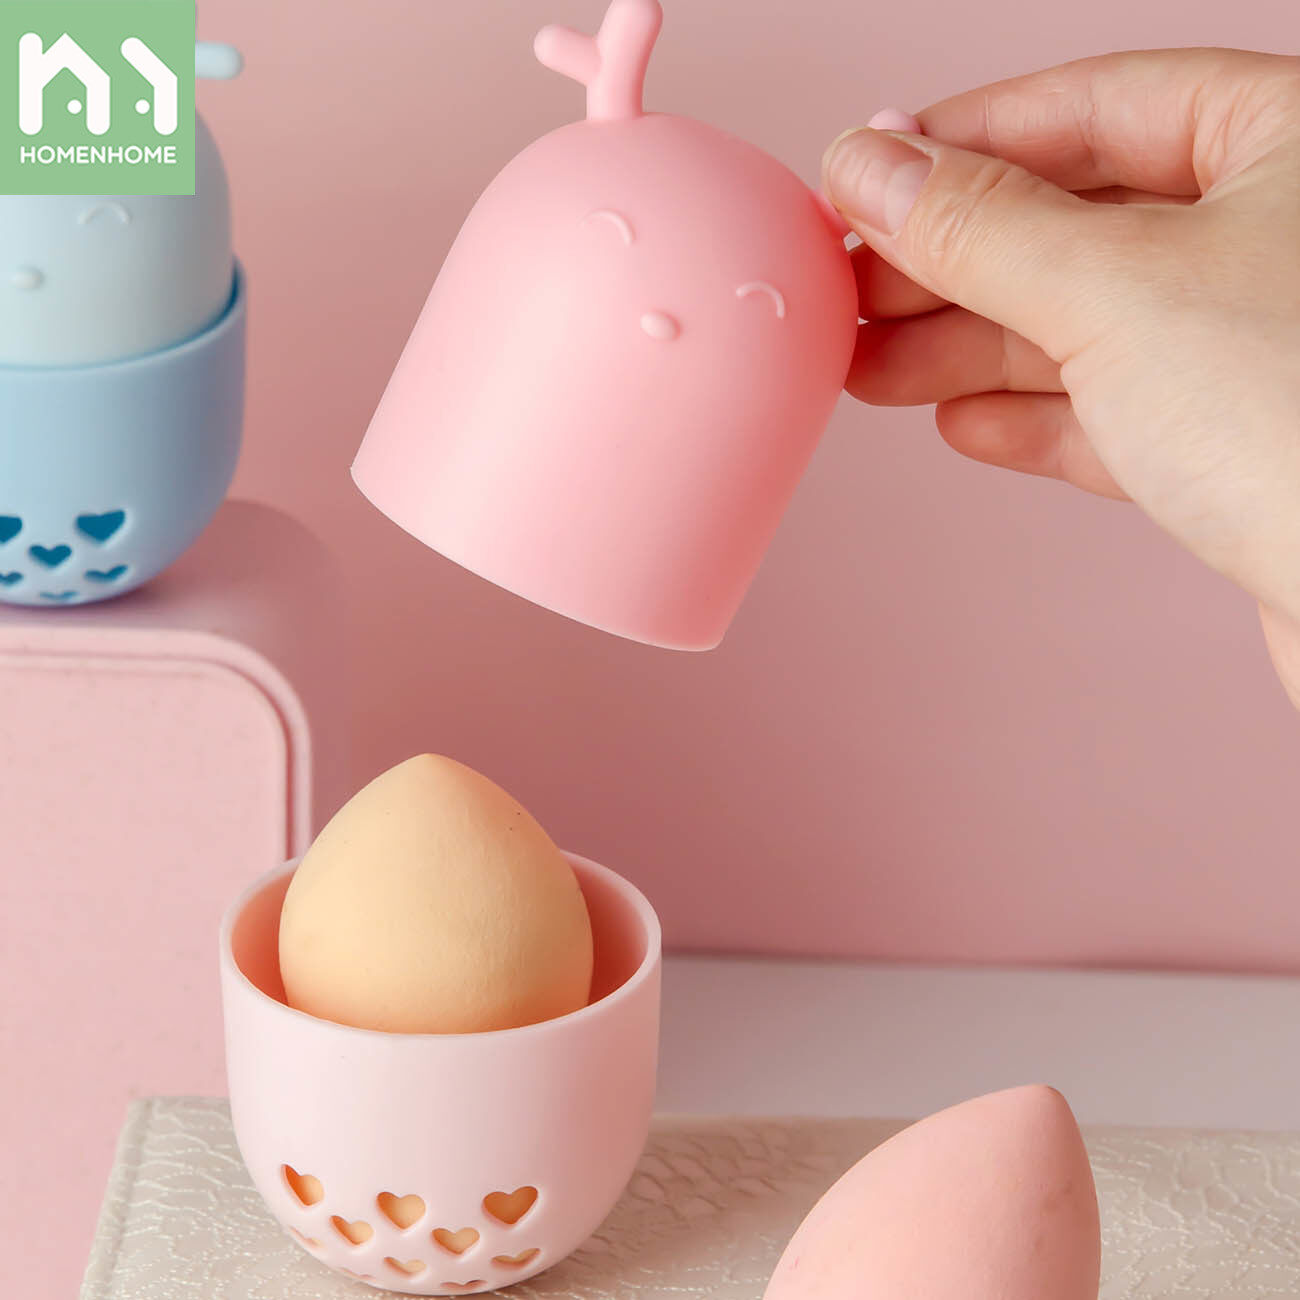 Homenhome Beauty Egg Storage Box With Lid Dustproof Puff Rack Travel Portable Silicone Sponge Protective Cover.